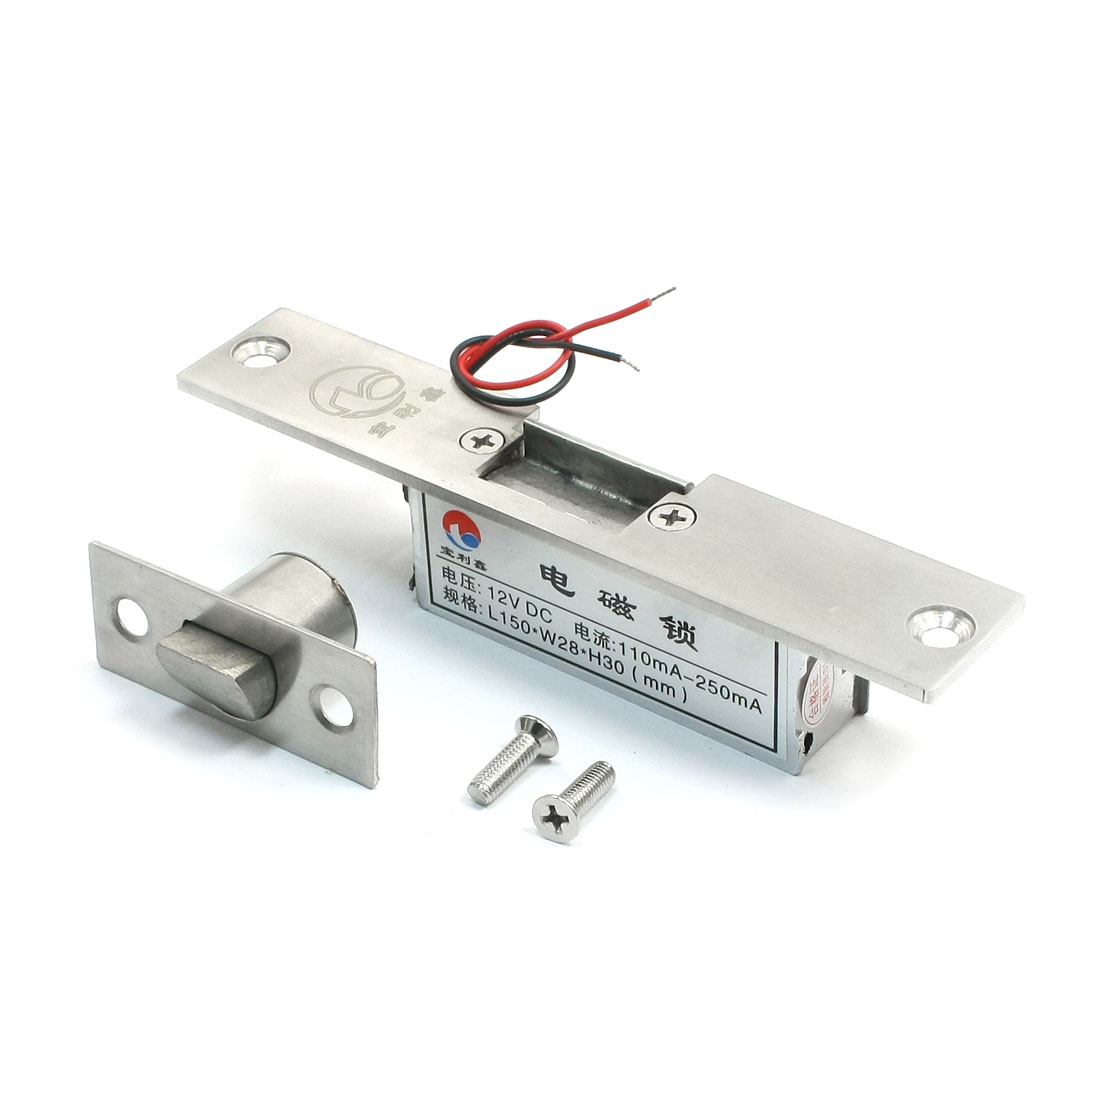 Building Garage Indoor Sucurity Door Part Electromagnetic Control Dual Wired Connecting Silver Tone Lock Latch NC DC 12V 110mA-250mA